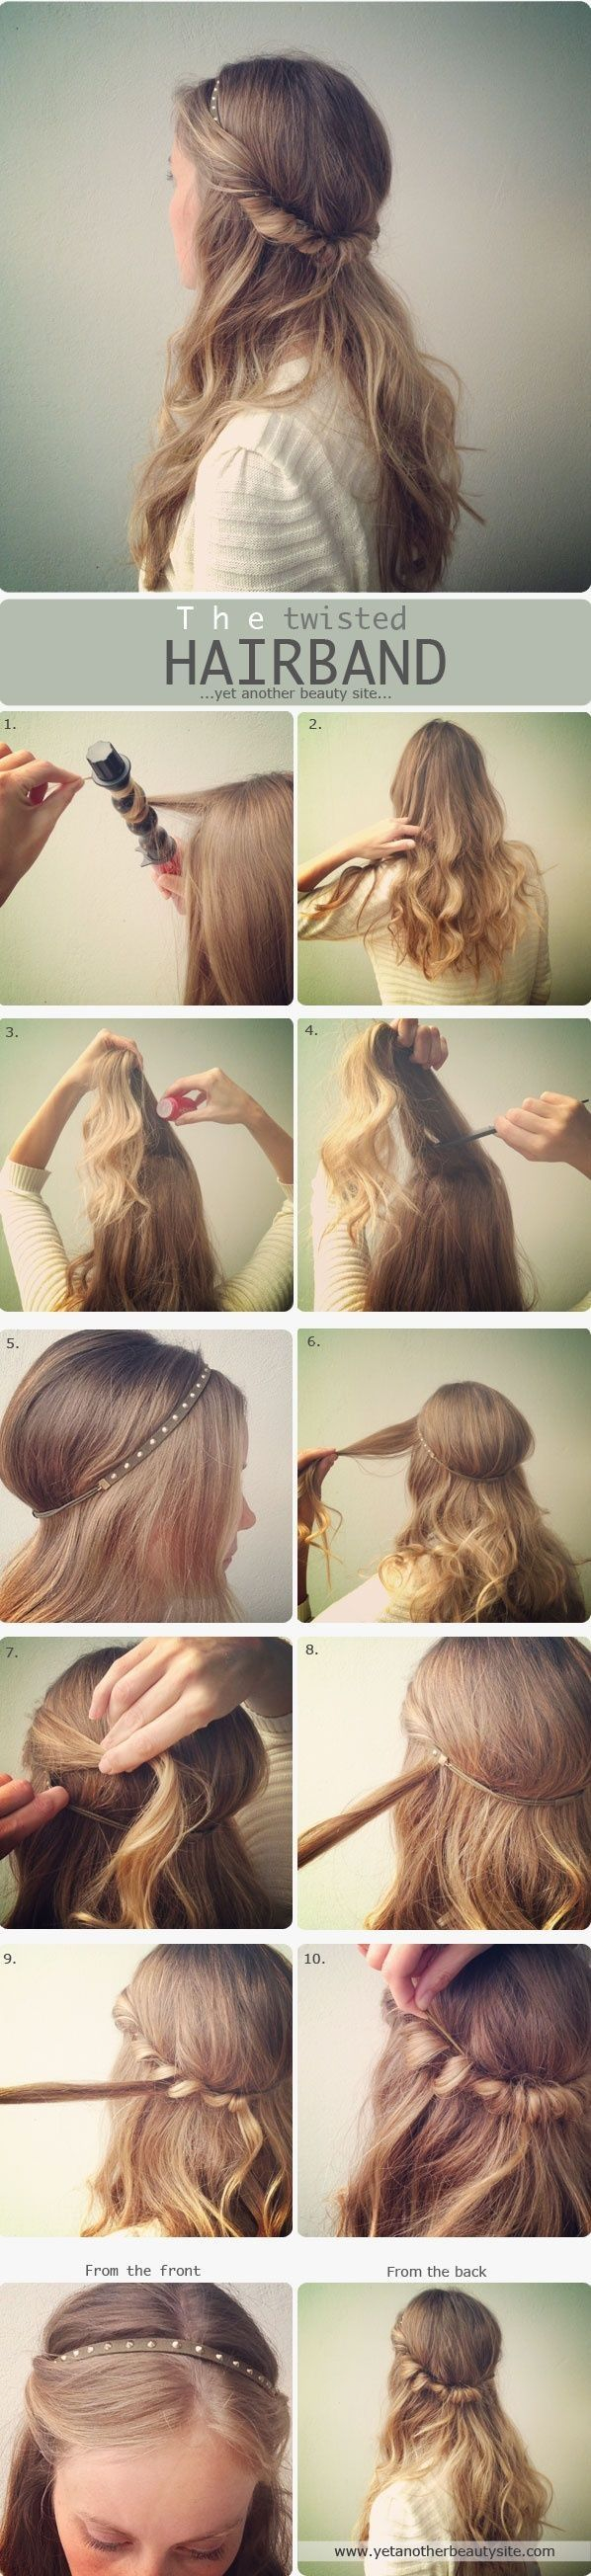 Headband Hairstyle. Never thought to do this and it's so simple. Ojala sea cierto!